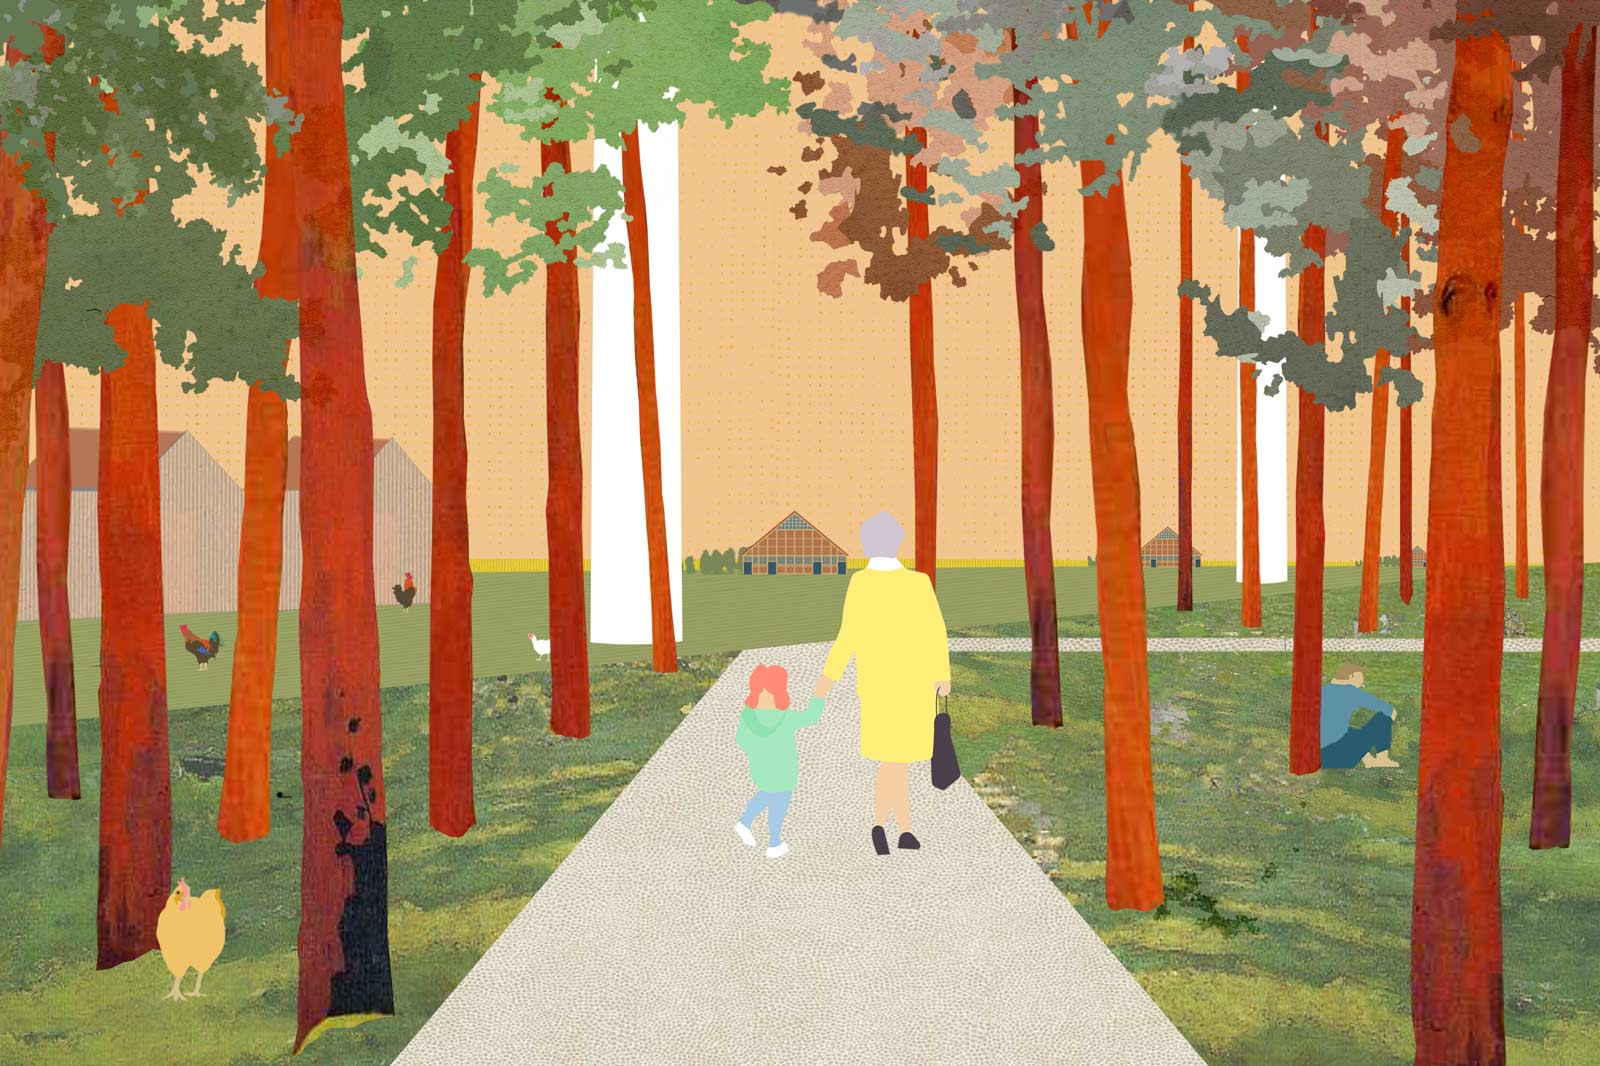 collage with elderly woman and child walking on a path in the forest fringe of Nagele image by BETA architects Evert Klinkenberg Auguste Gus van Oppen